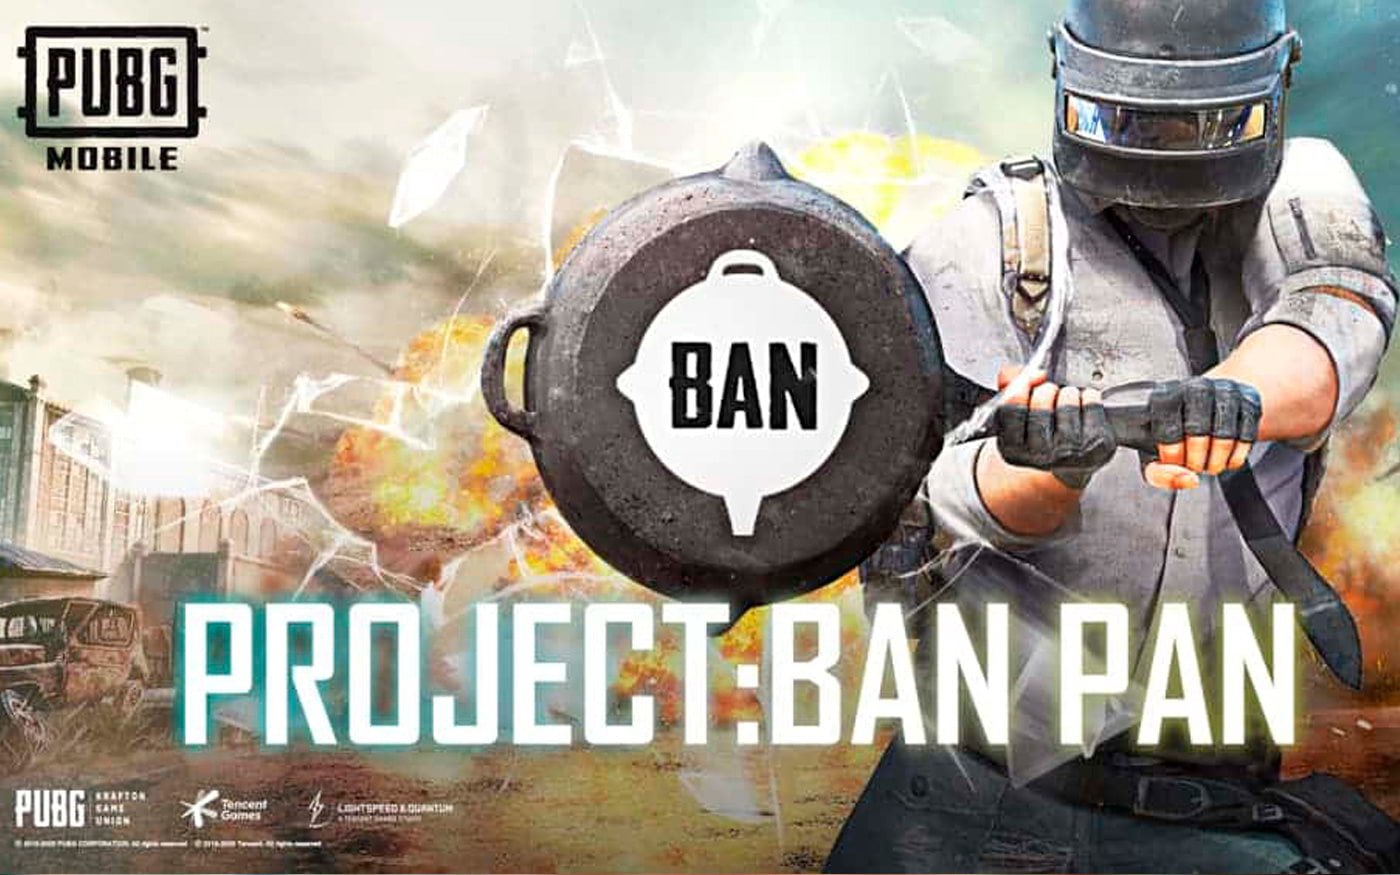 PUBG Mobile 'Project Ban Pan' traz novas medidas anti-fraude